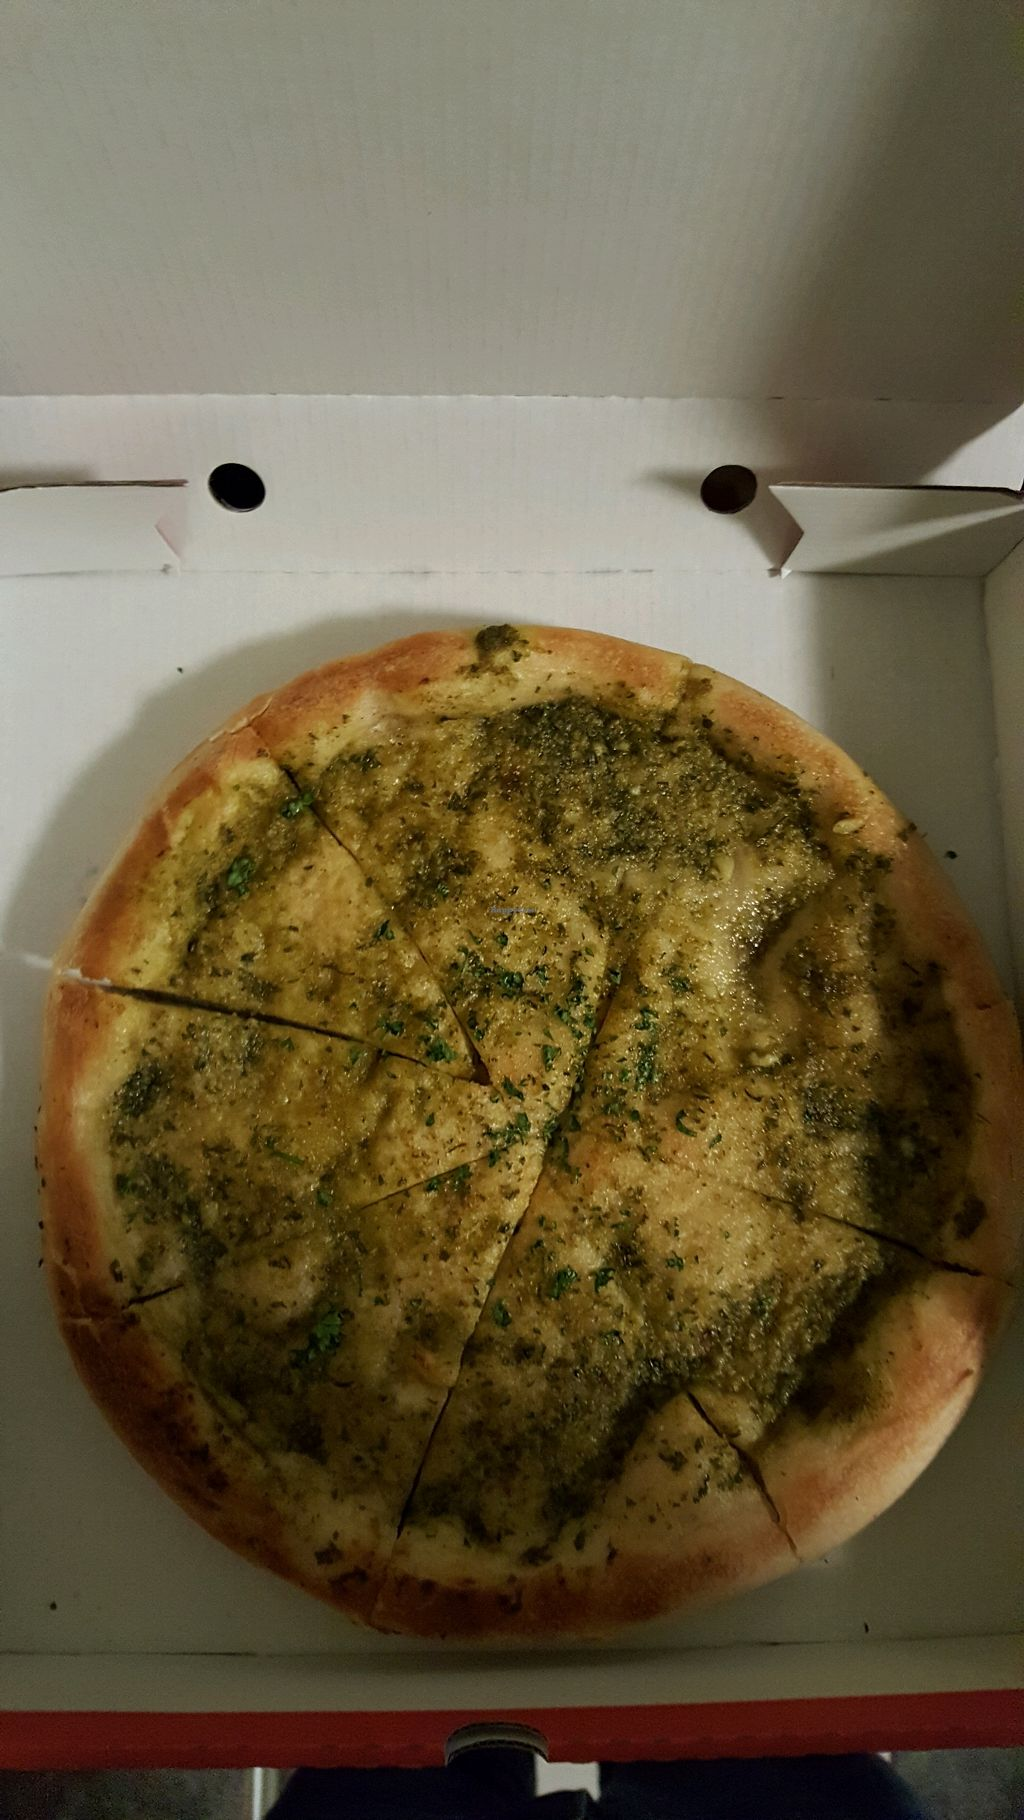 """Photo of La Bella  by <a href=""""/members/profile/KarlAyers"""">KarlAyers</a> <br/>Vegan Pesto Garlic Bread <br/> February 18, 2018  - <a href='/contact/abuse/image/109624/361003'>Report</a>"""